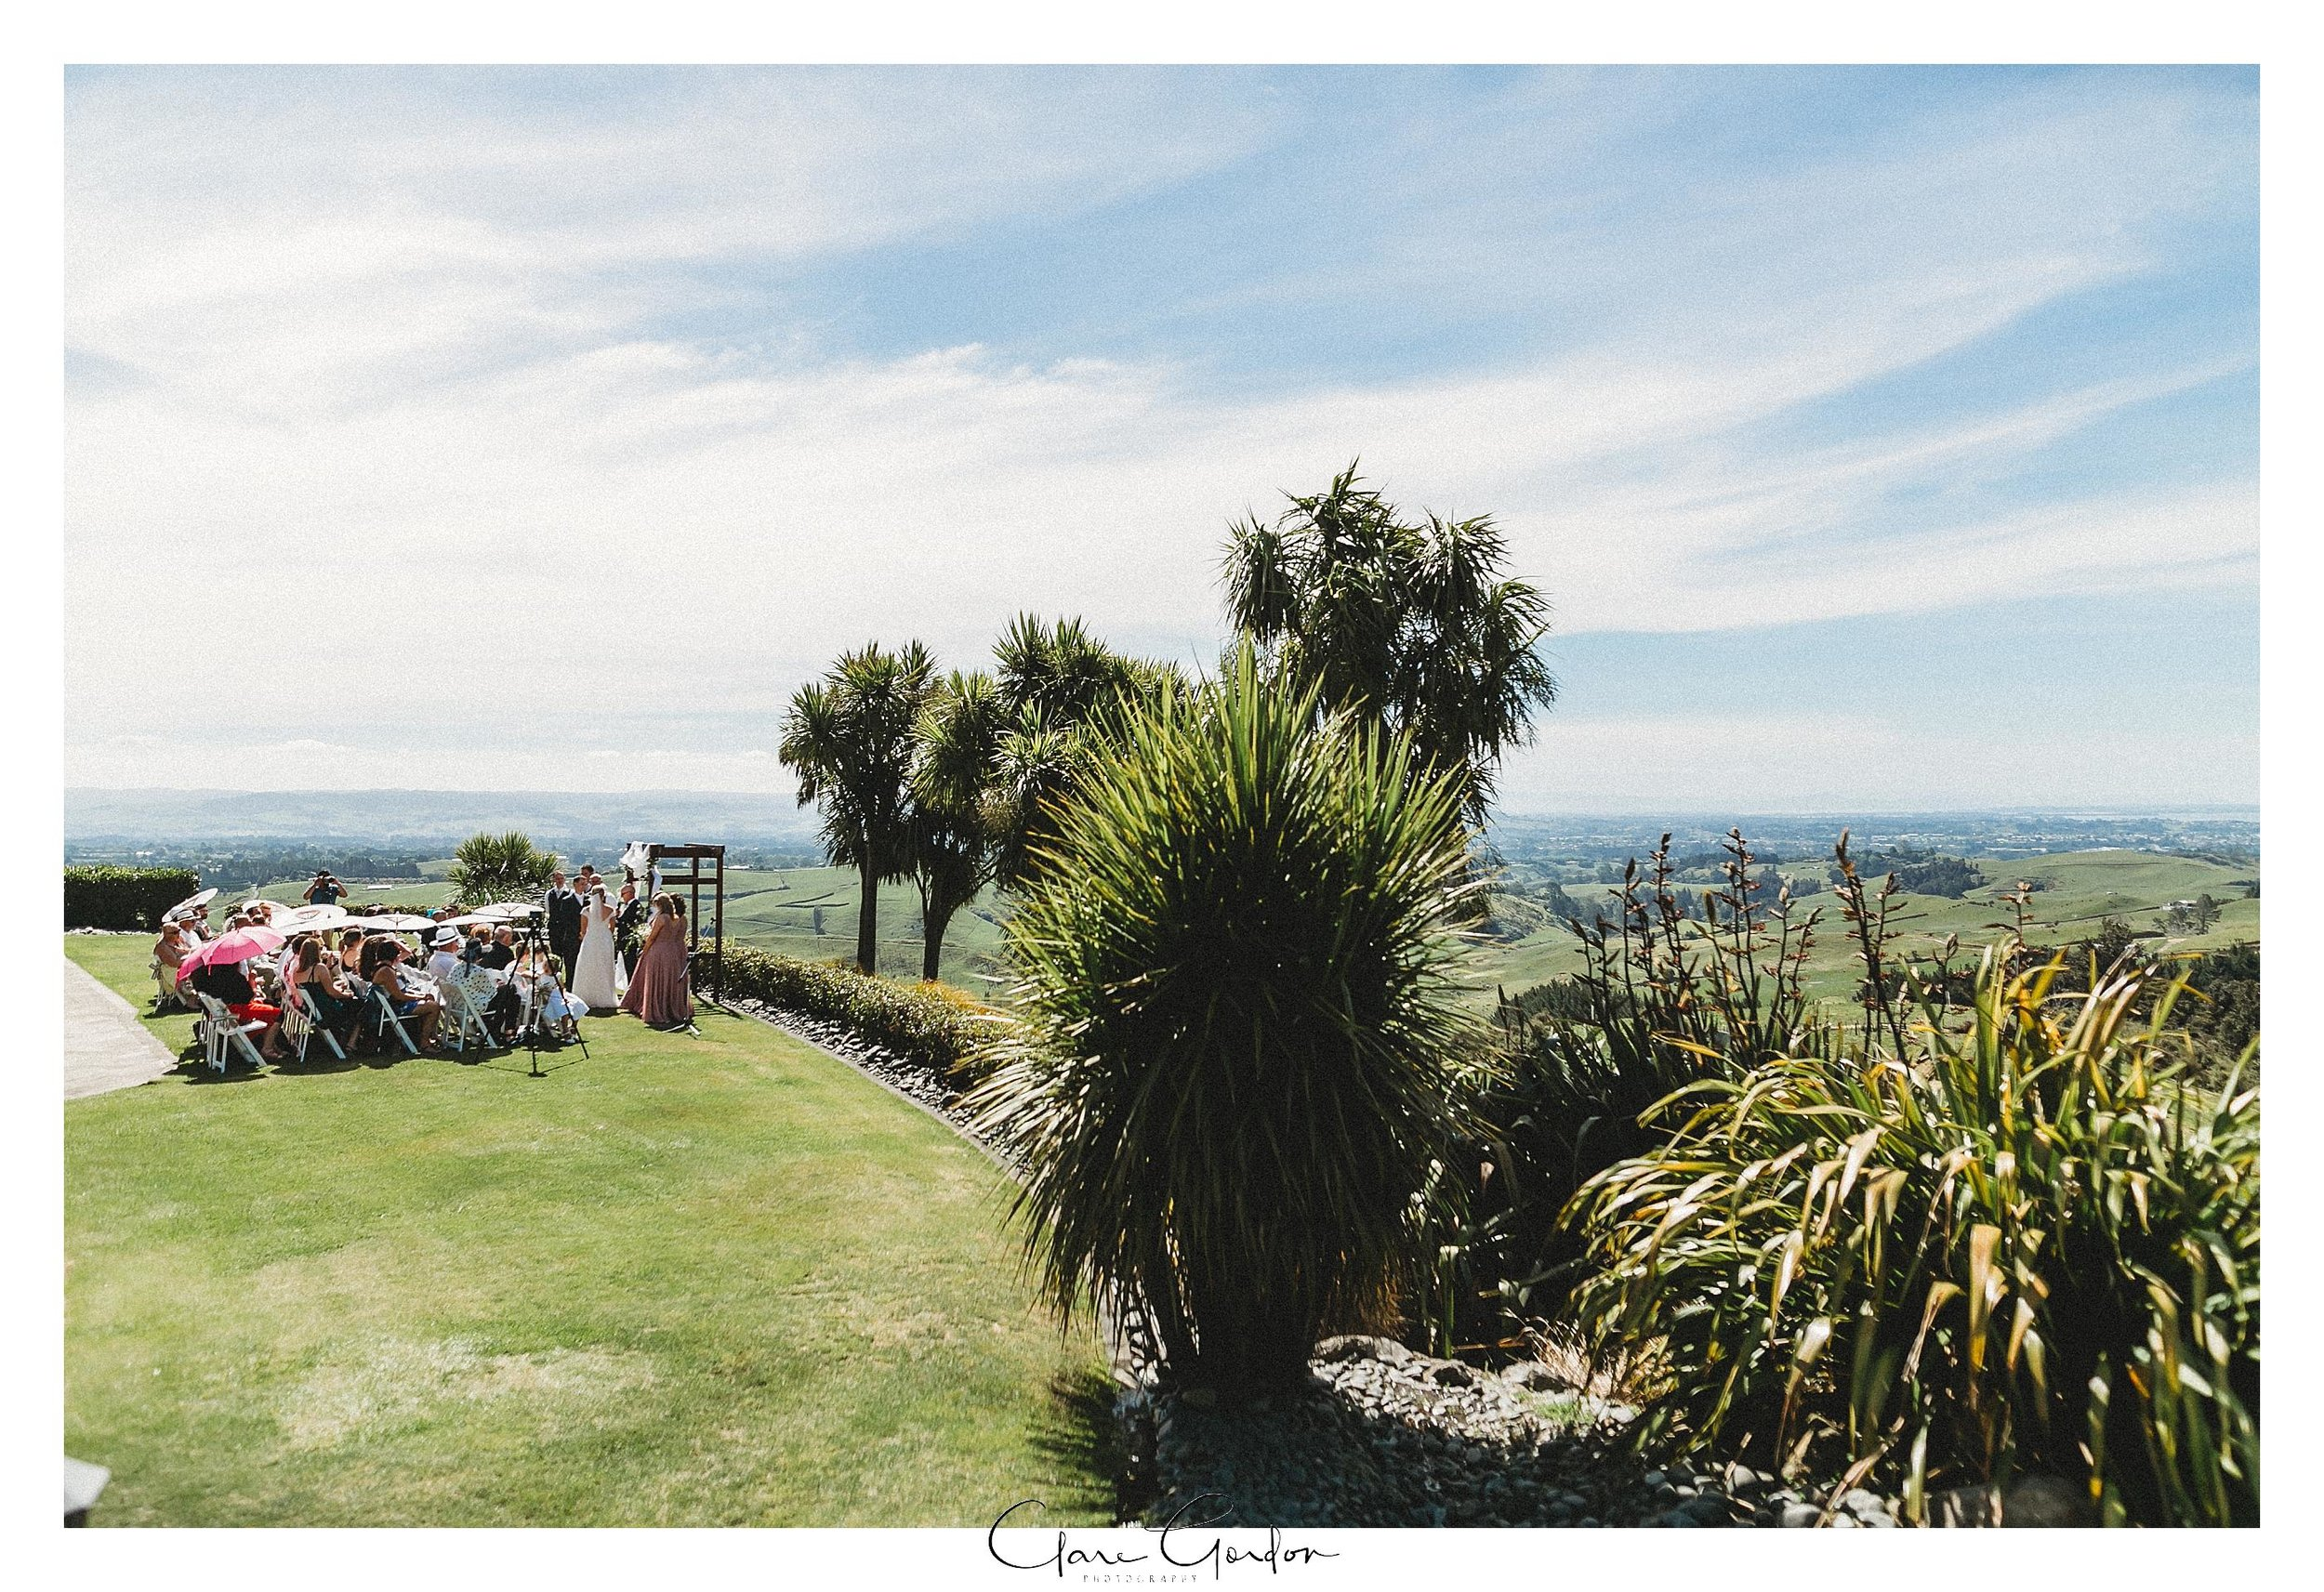 Eagles-Ridge-wedding-photo-Tauranga (82).jpg